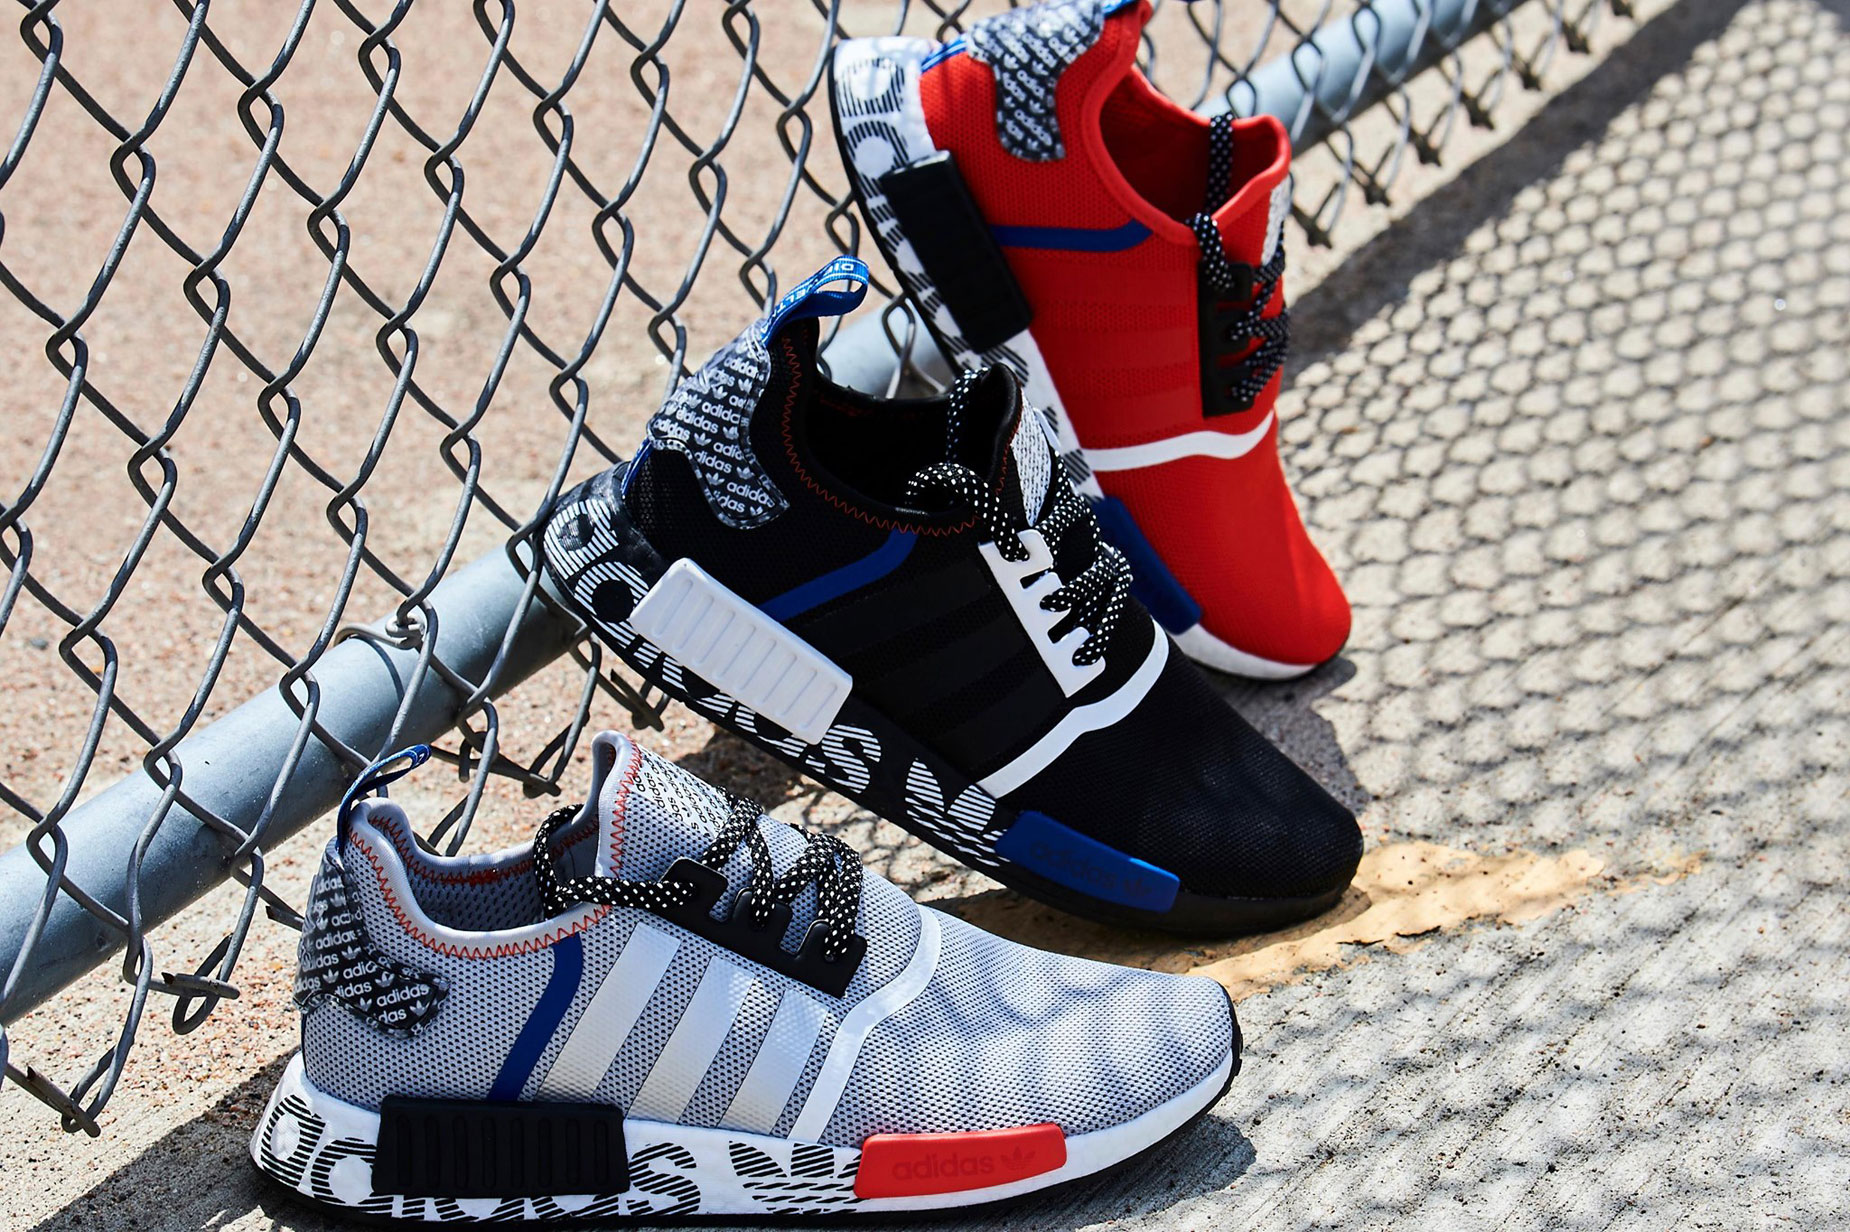 adidas-nmd-r1-transmission-sneaker-pack